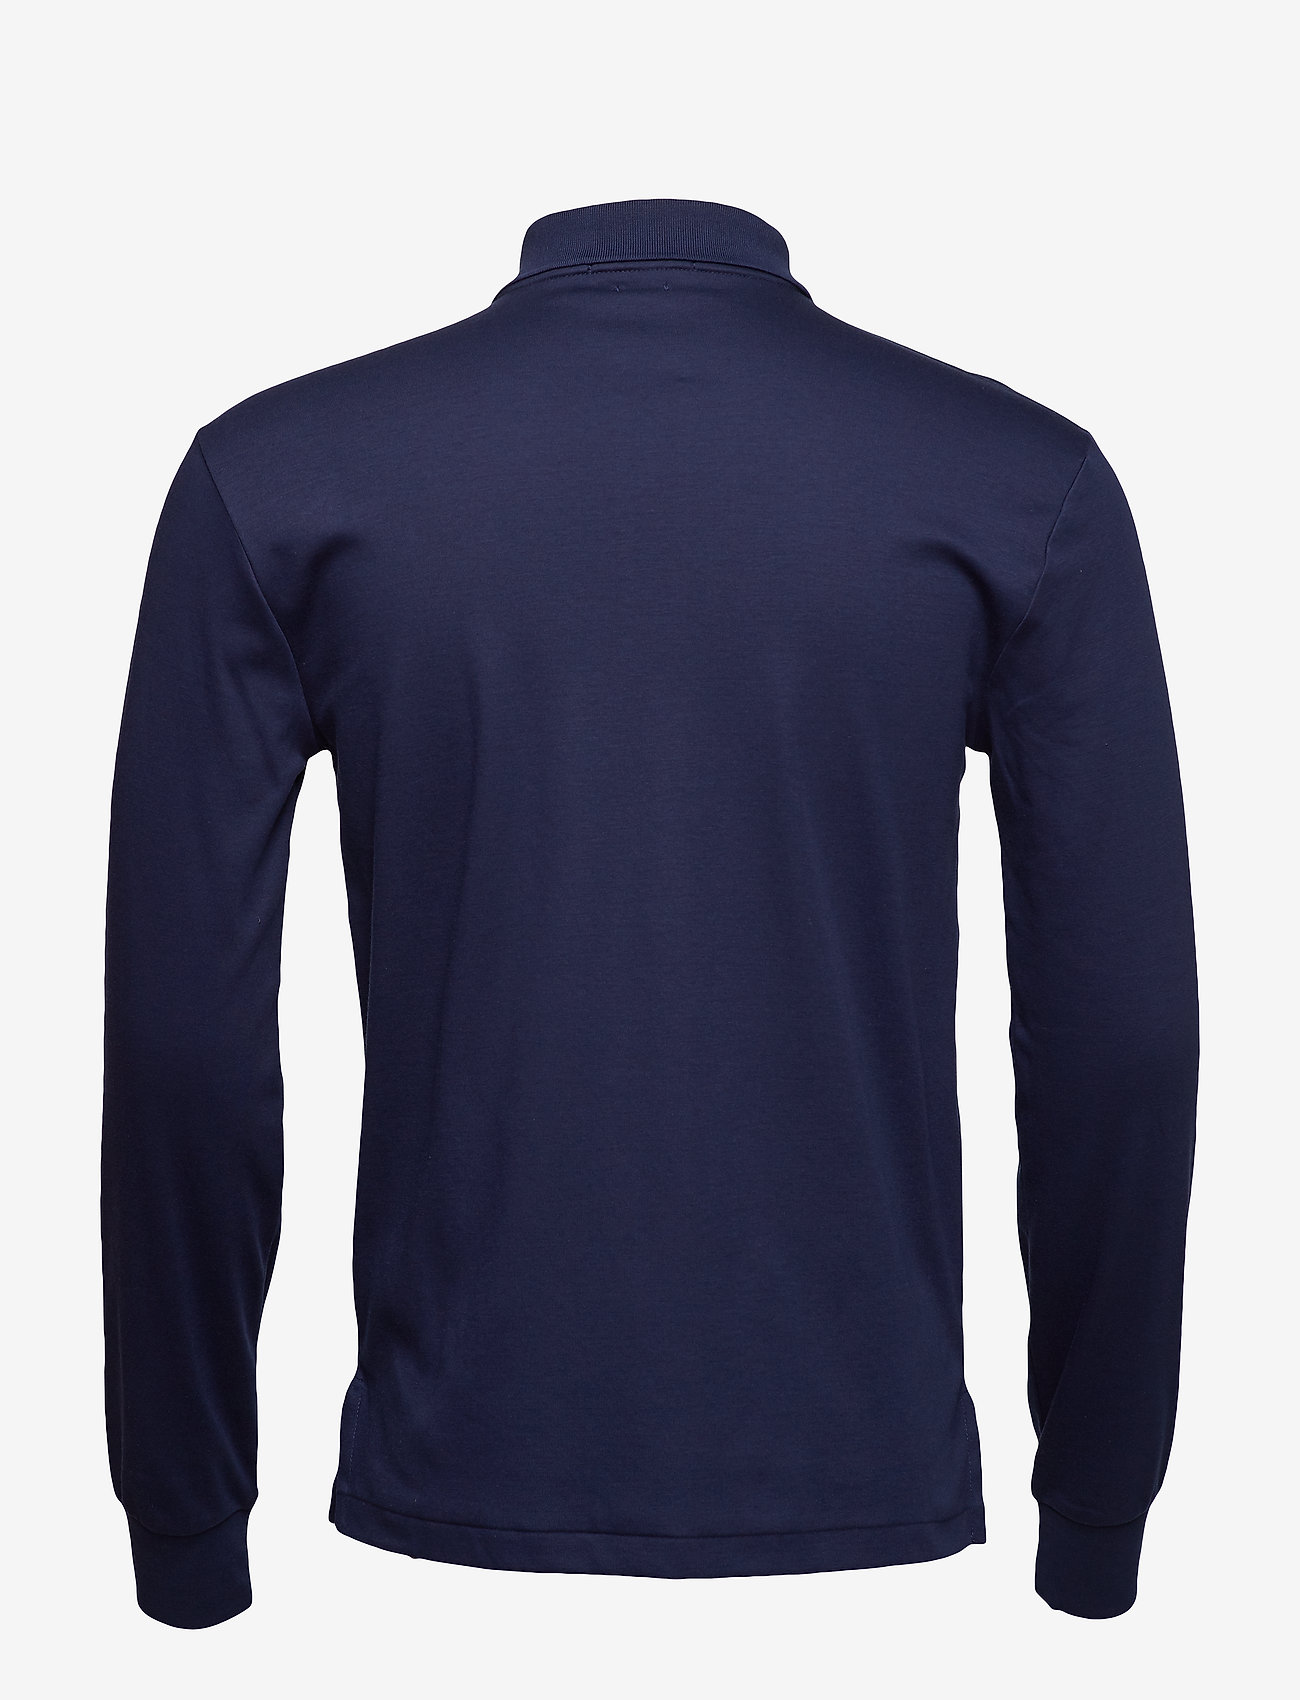 Lskcslm12-long Sleeve-knit (French Navy) (896.25 kr) - Polo Ralph Lauren